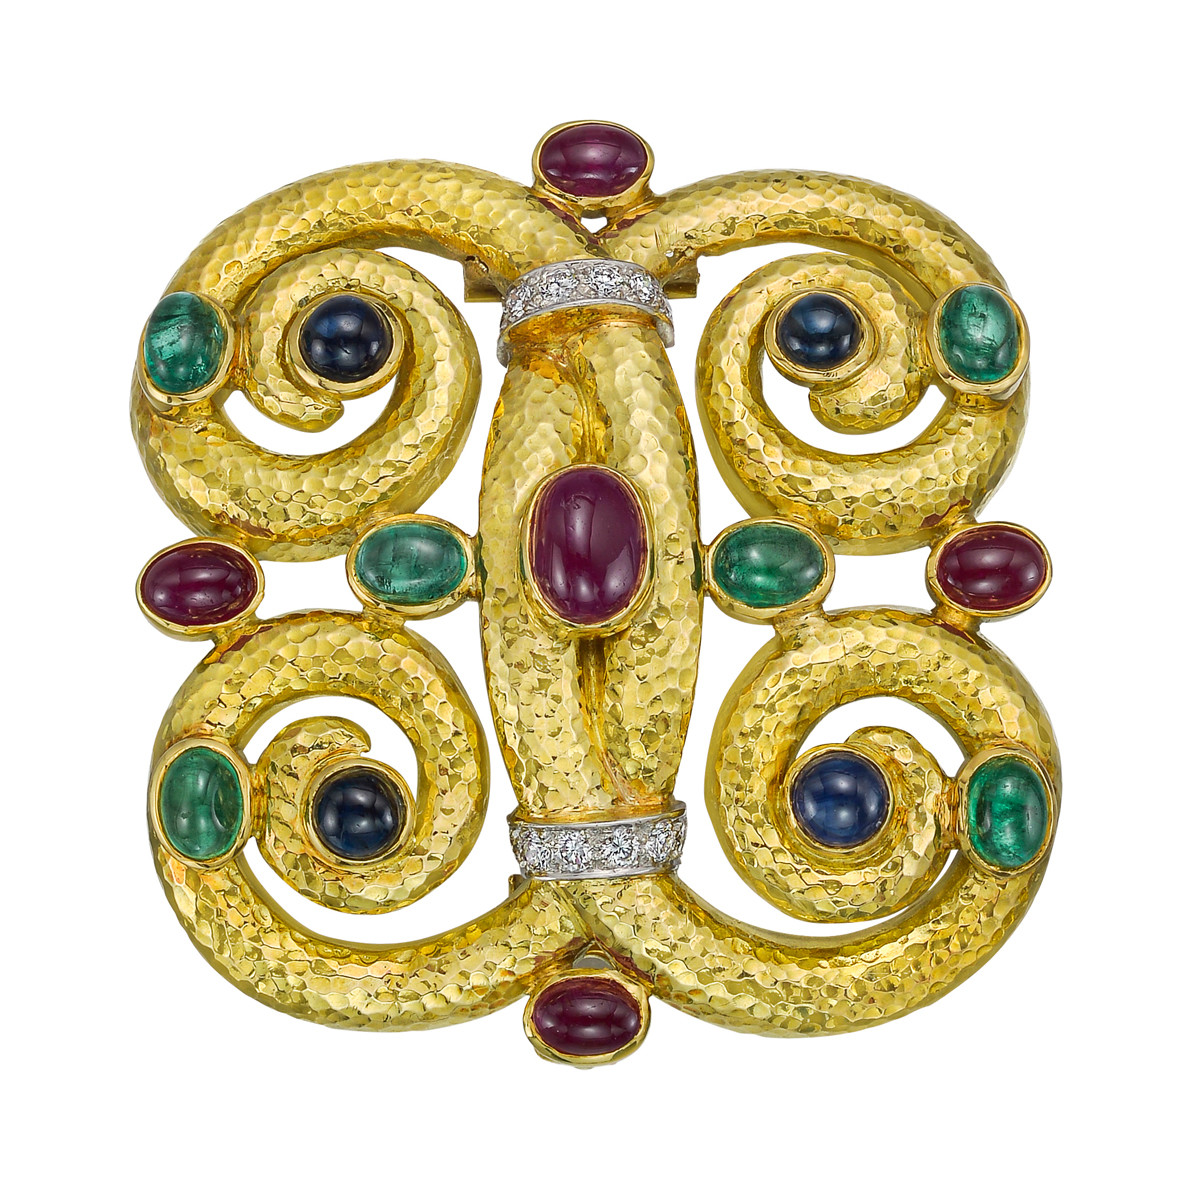 18k Gold Gem-Set Scrolled Quatrefoil Brooch